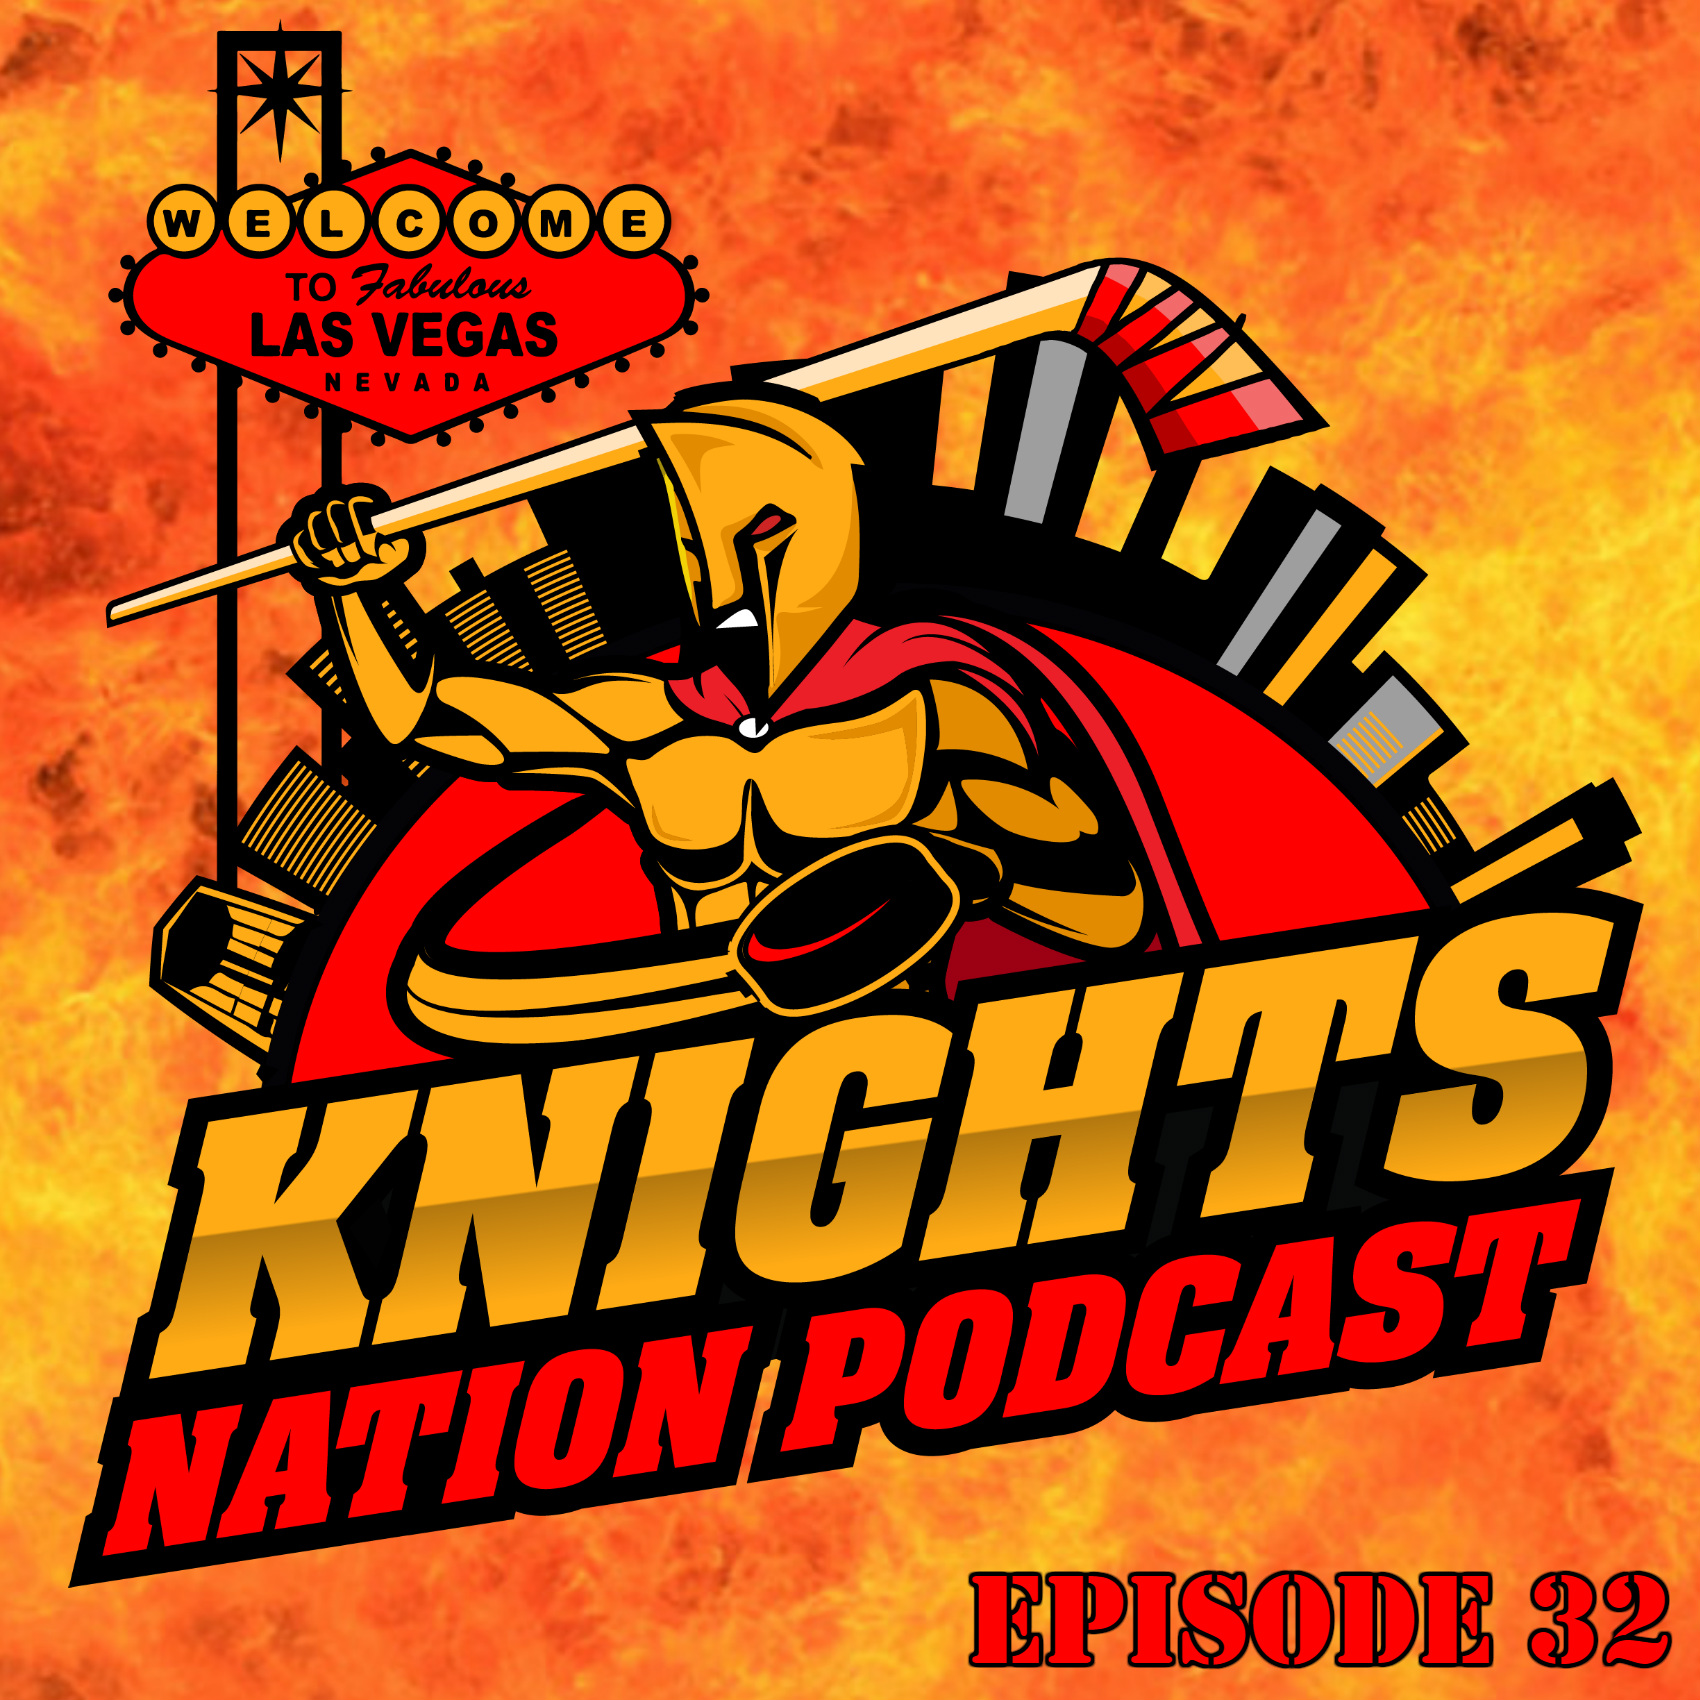 Episode 32: Last week Vegas went 0-2-1 can Mark Stone help turn things around in Vegas?